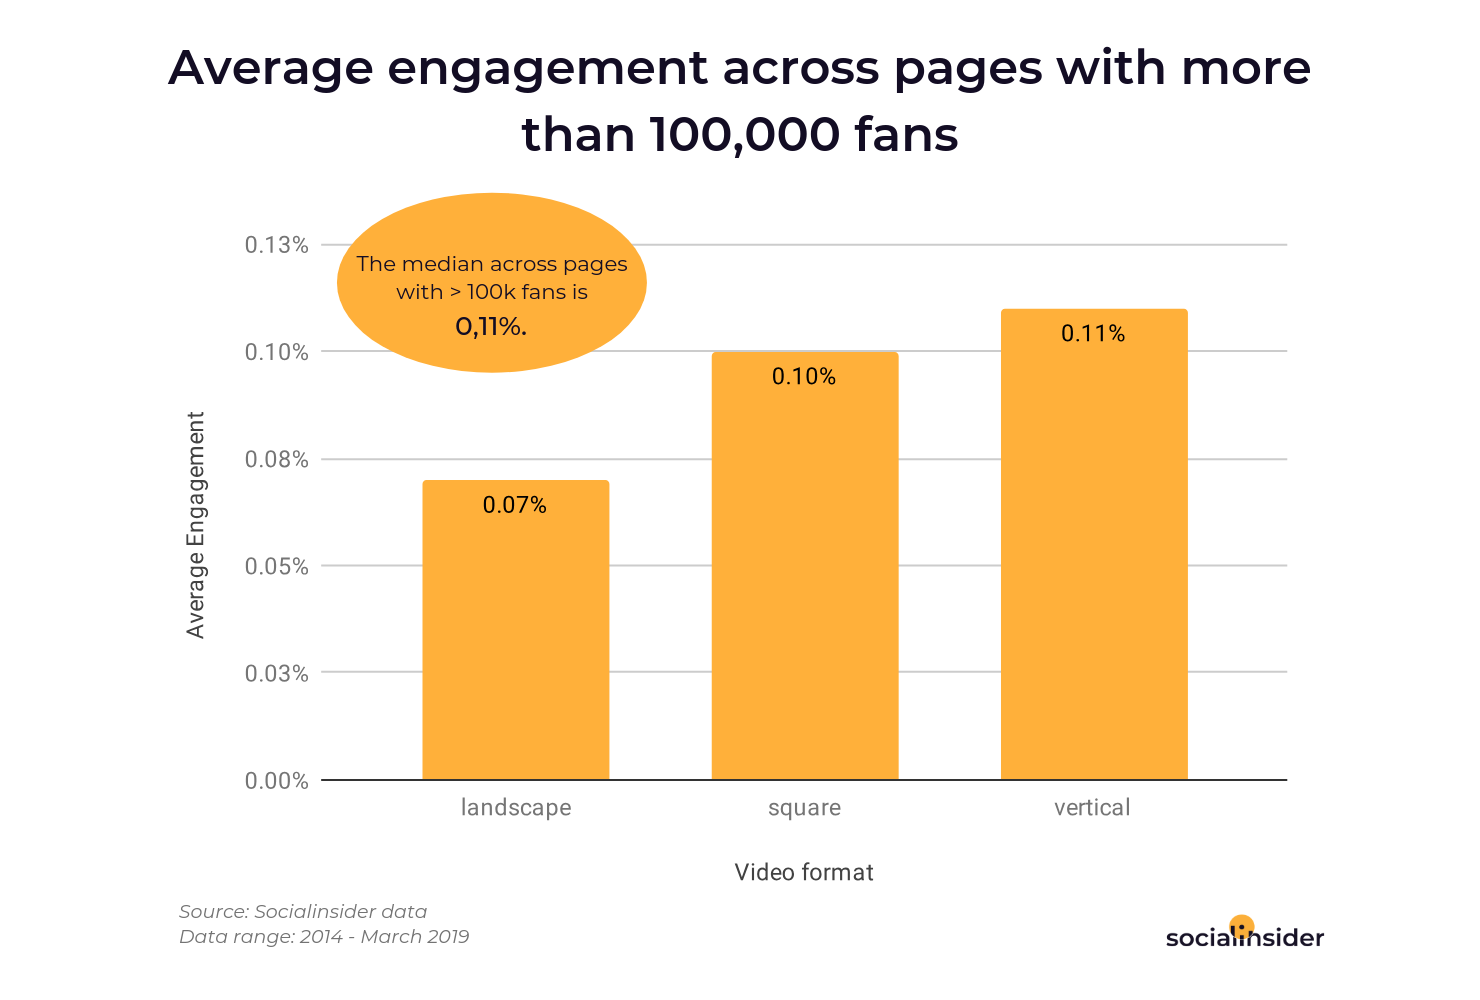 Average engagement across pages with more than 100,000 fans